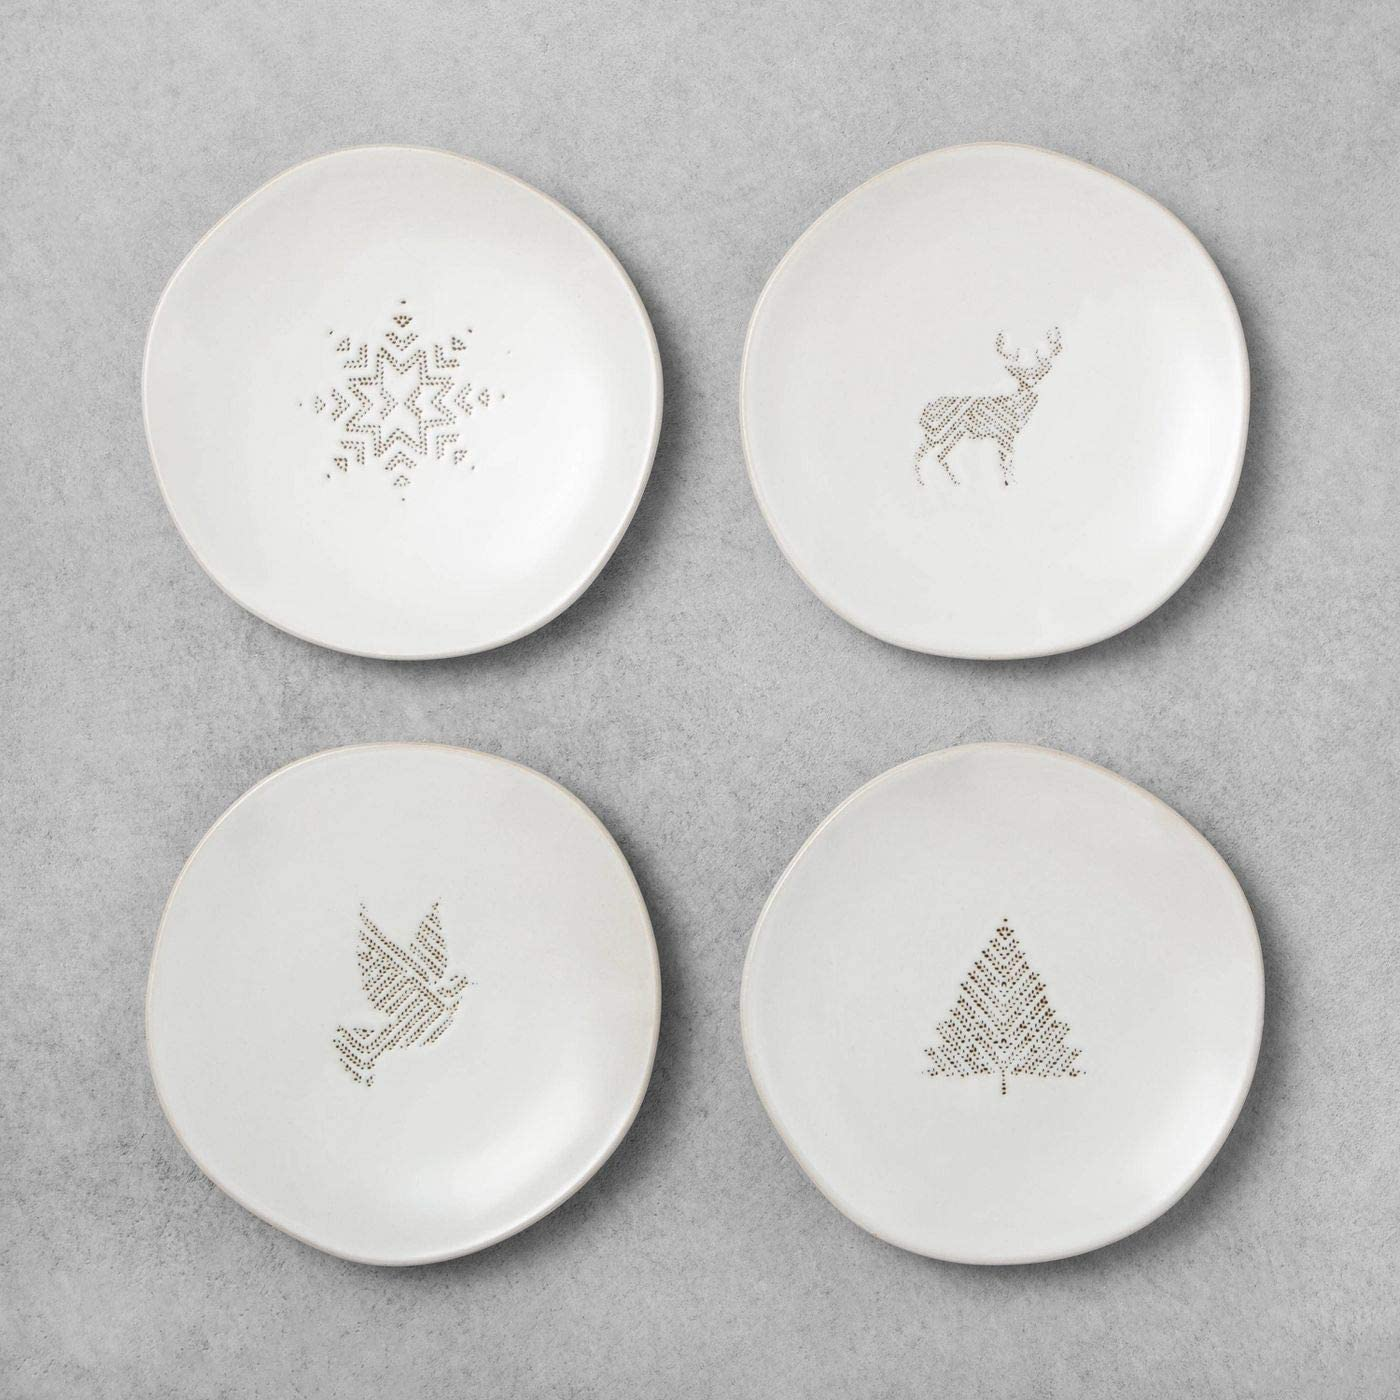 Amazon Com 4ct Seasonal Appetizer Plates Holiday Motifs Sour Cream Hearth Hand With Magnolia Kitchen Dining